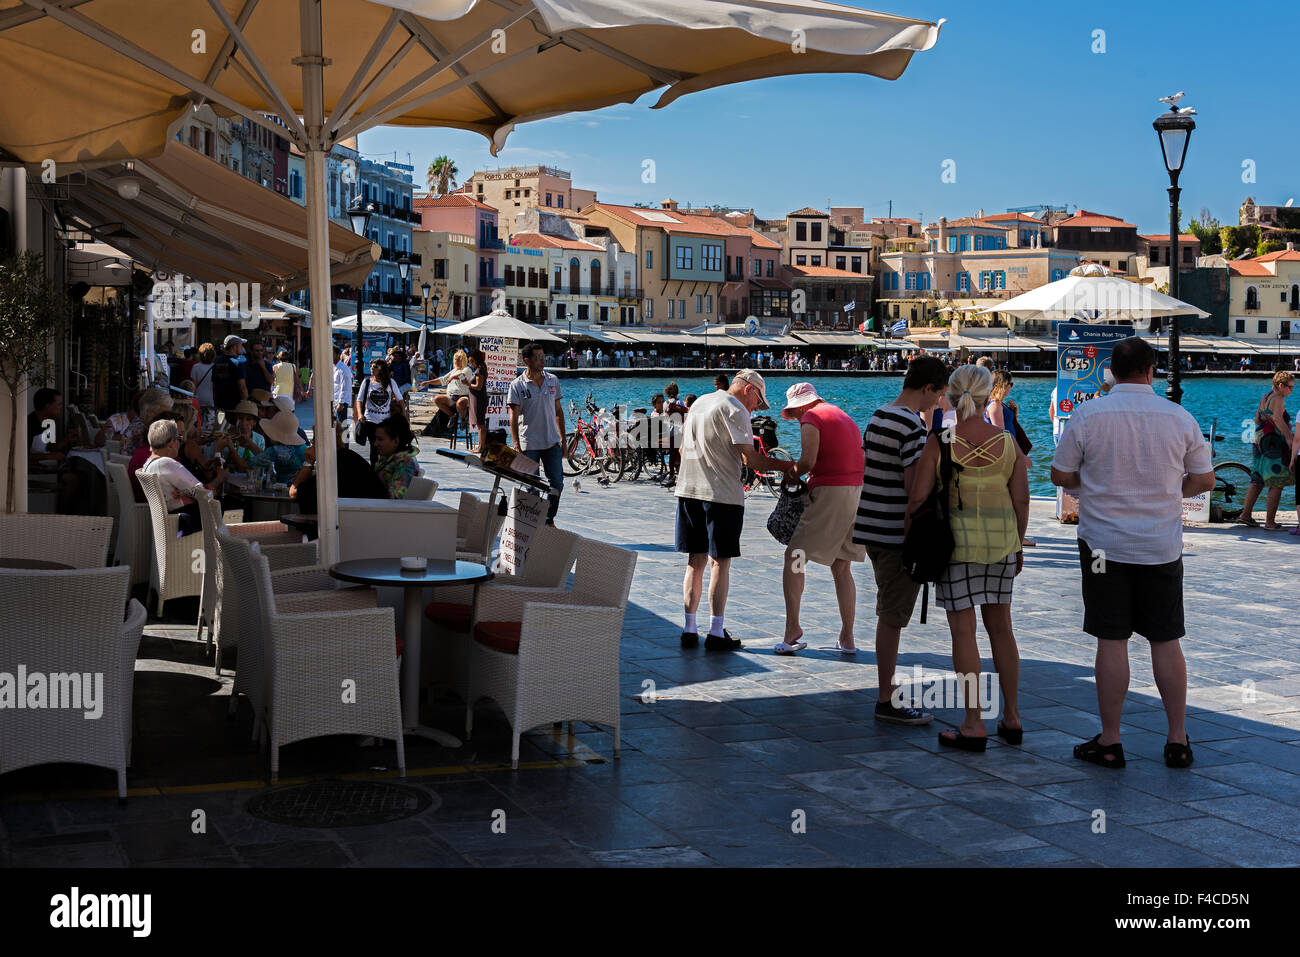 Cafe in the vieux port terra vecchia bastia corsica france stock - Restaurants And Tourists In The Old Port Of Chania Crete